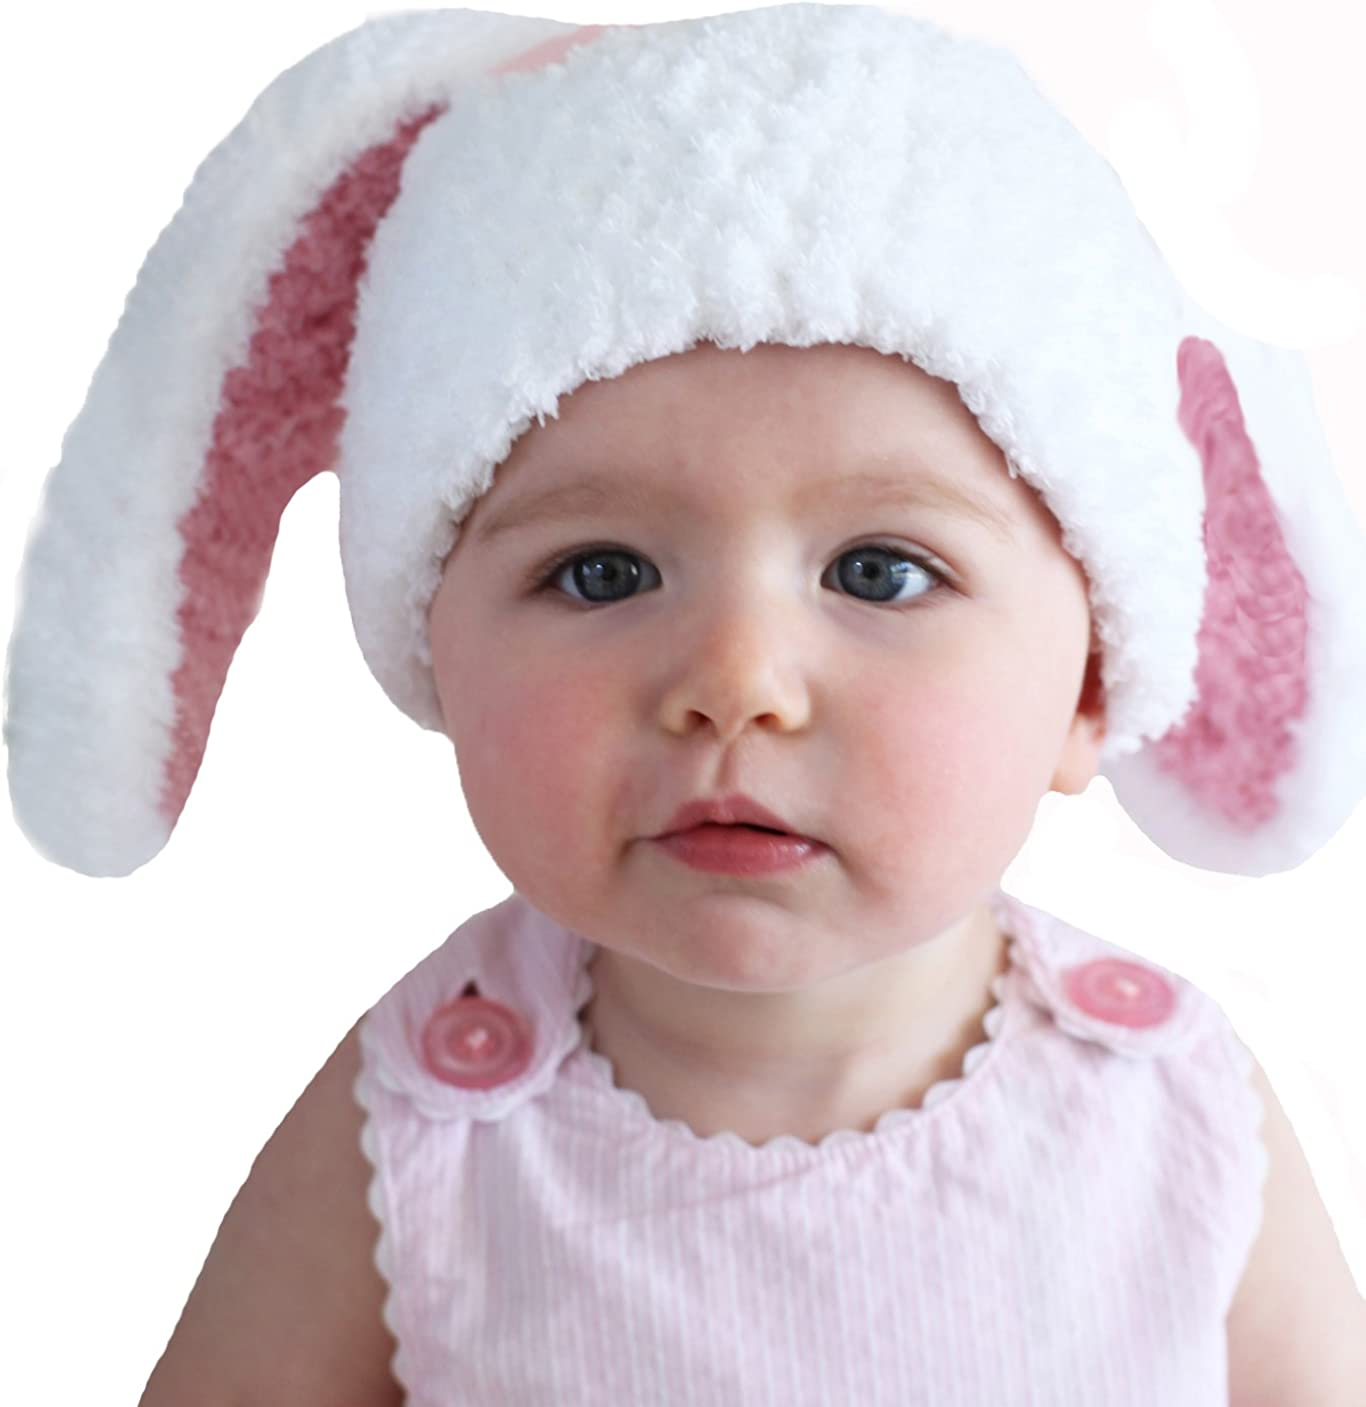 55% OFF Melondipity Girls Floppy Ear Bunny Baby White - Prem Organic Challenge the lowest price Hat